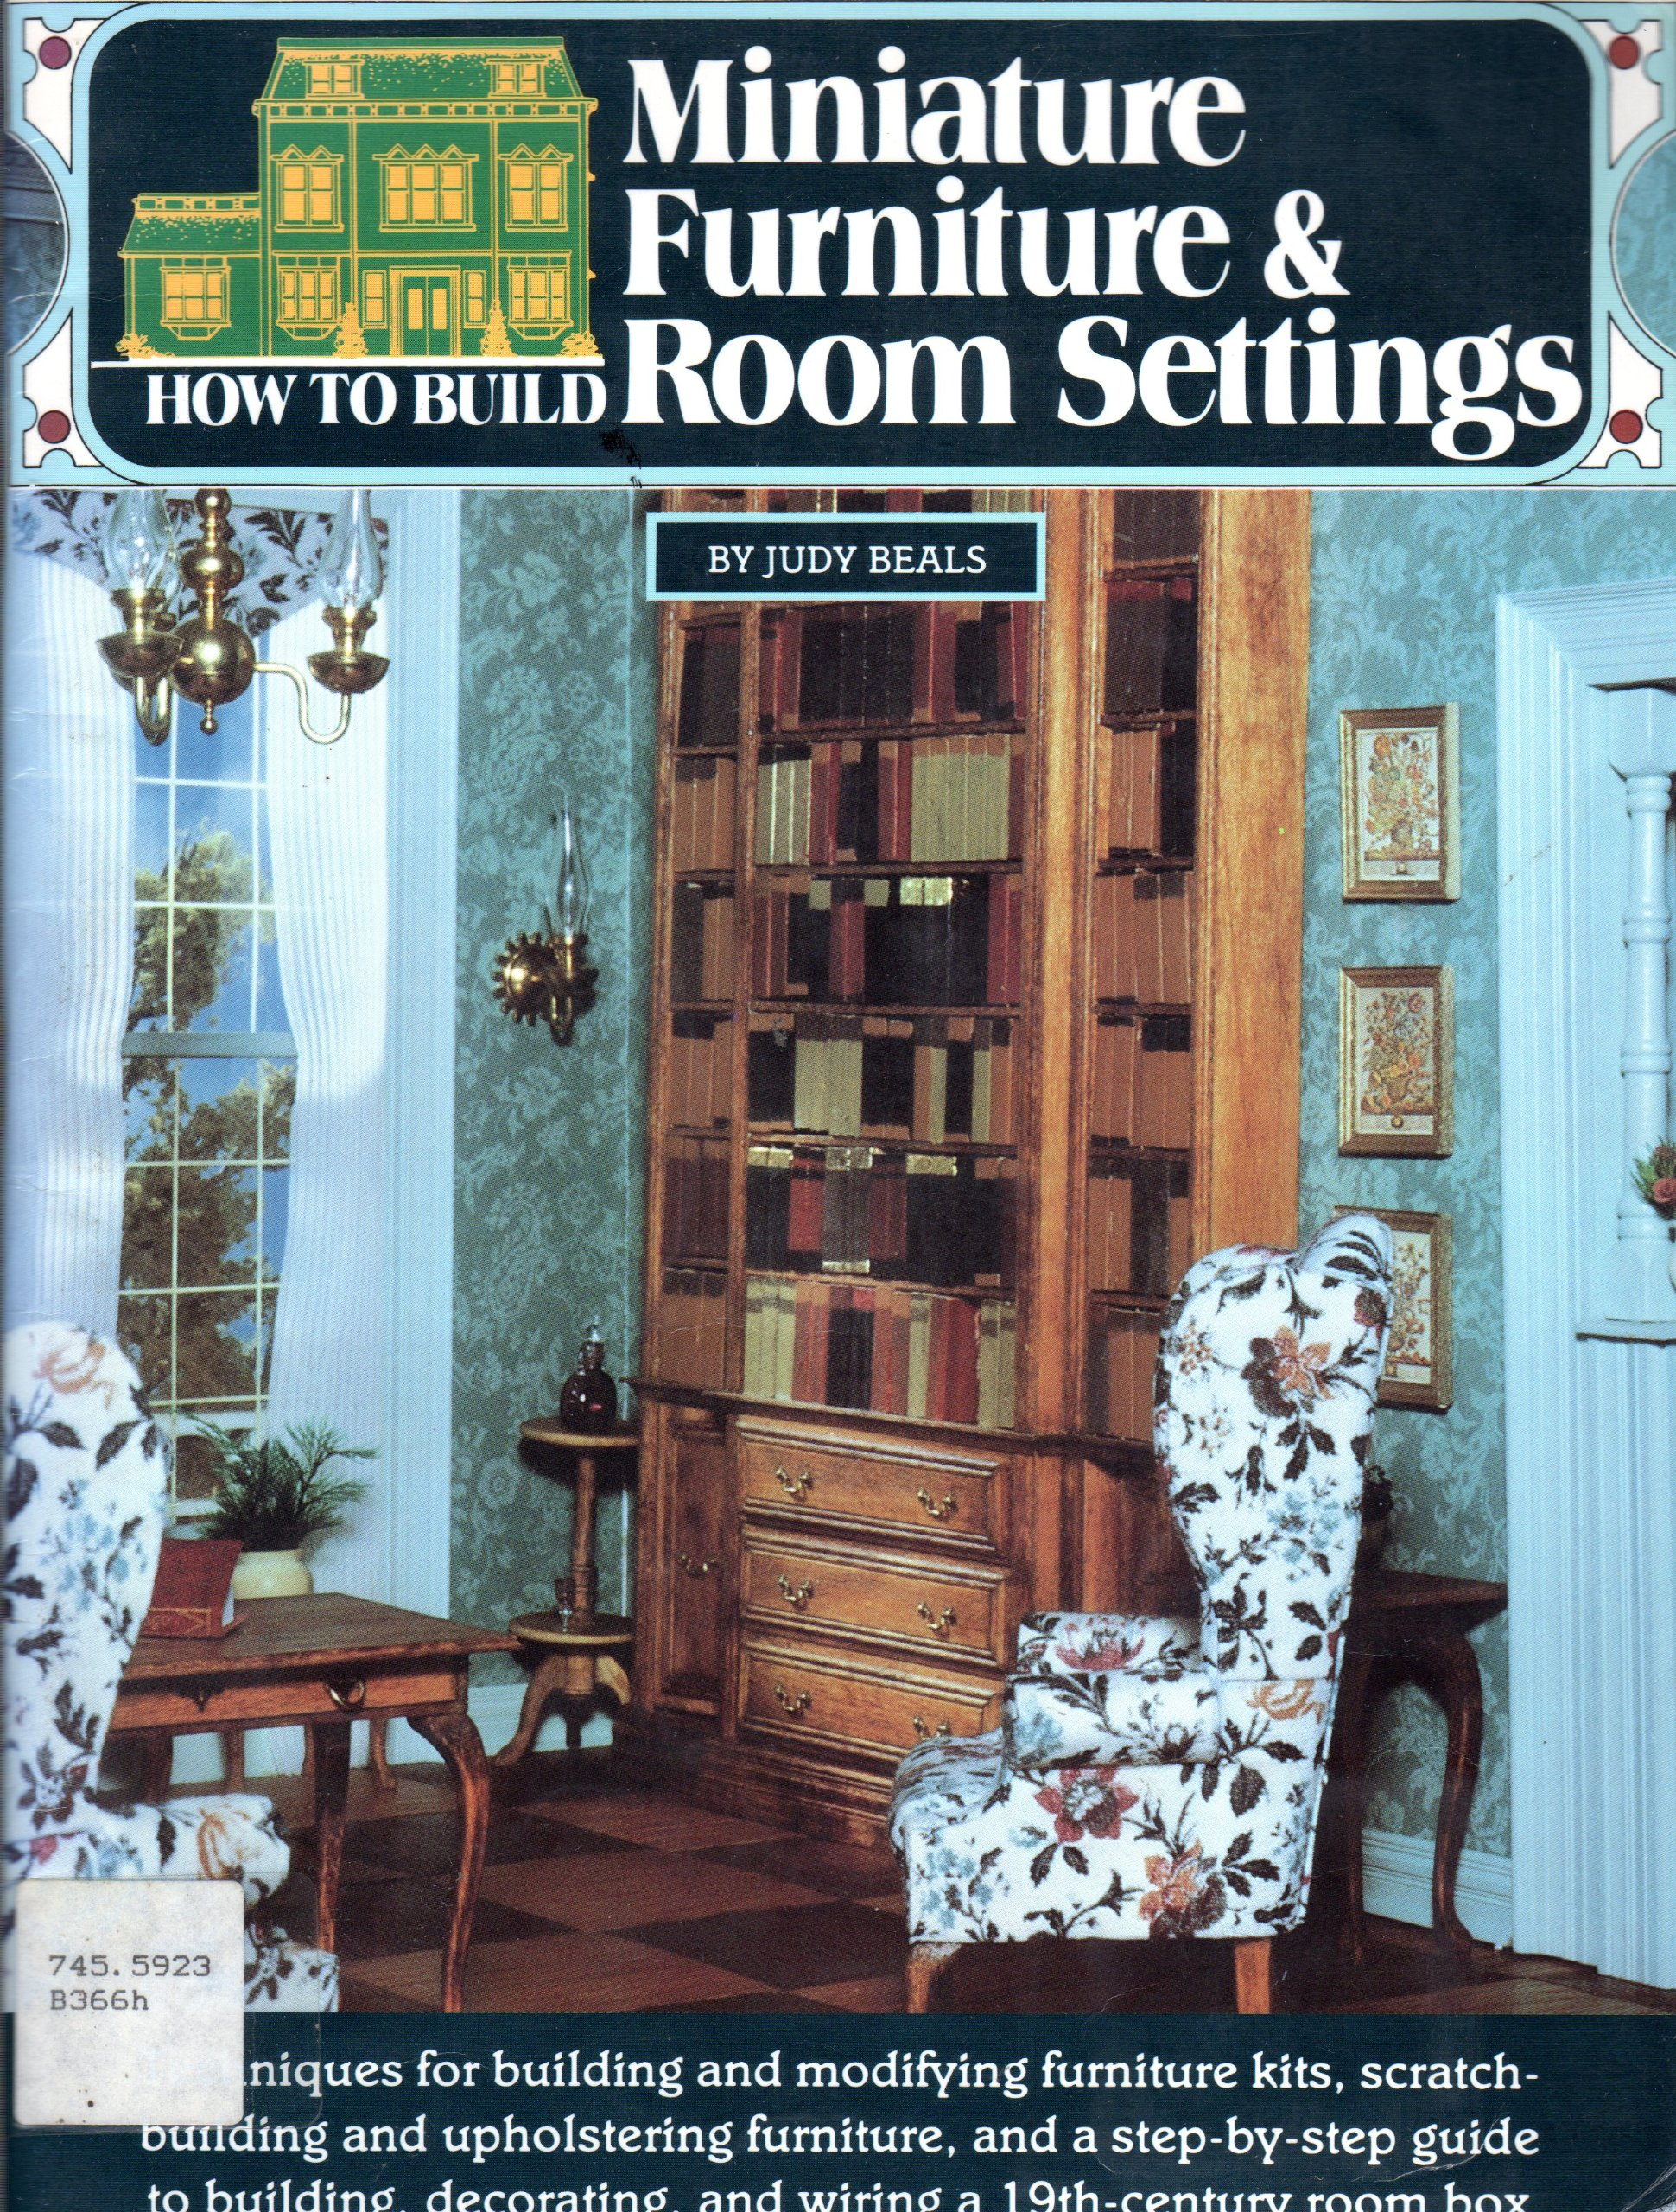 How To Build Miniature Furniture And Room Settings: Judy Beals:  9780890240441: Amazon.com: Books